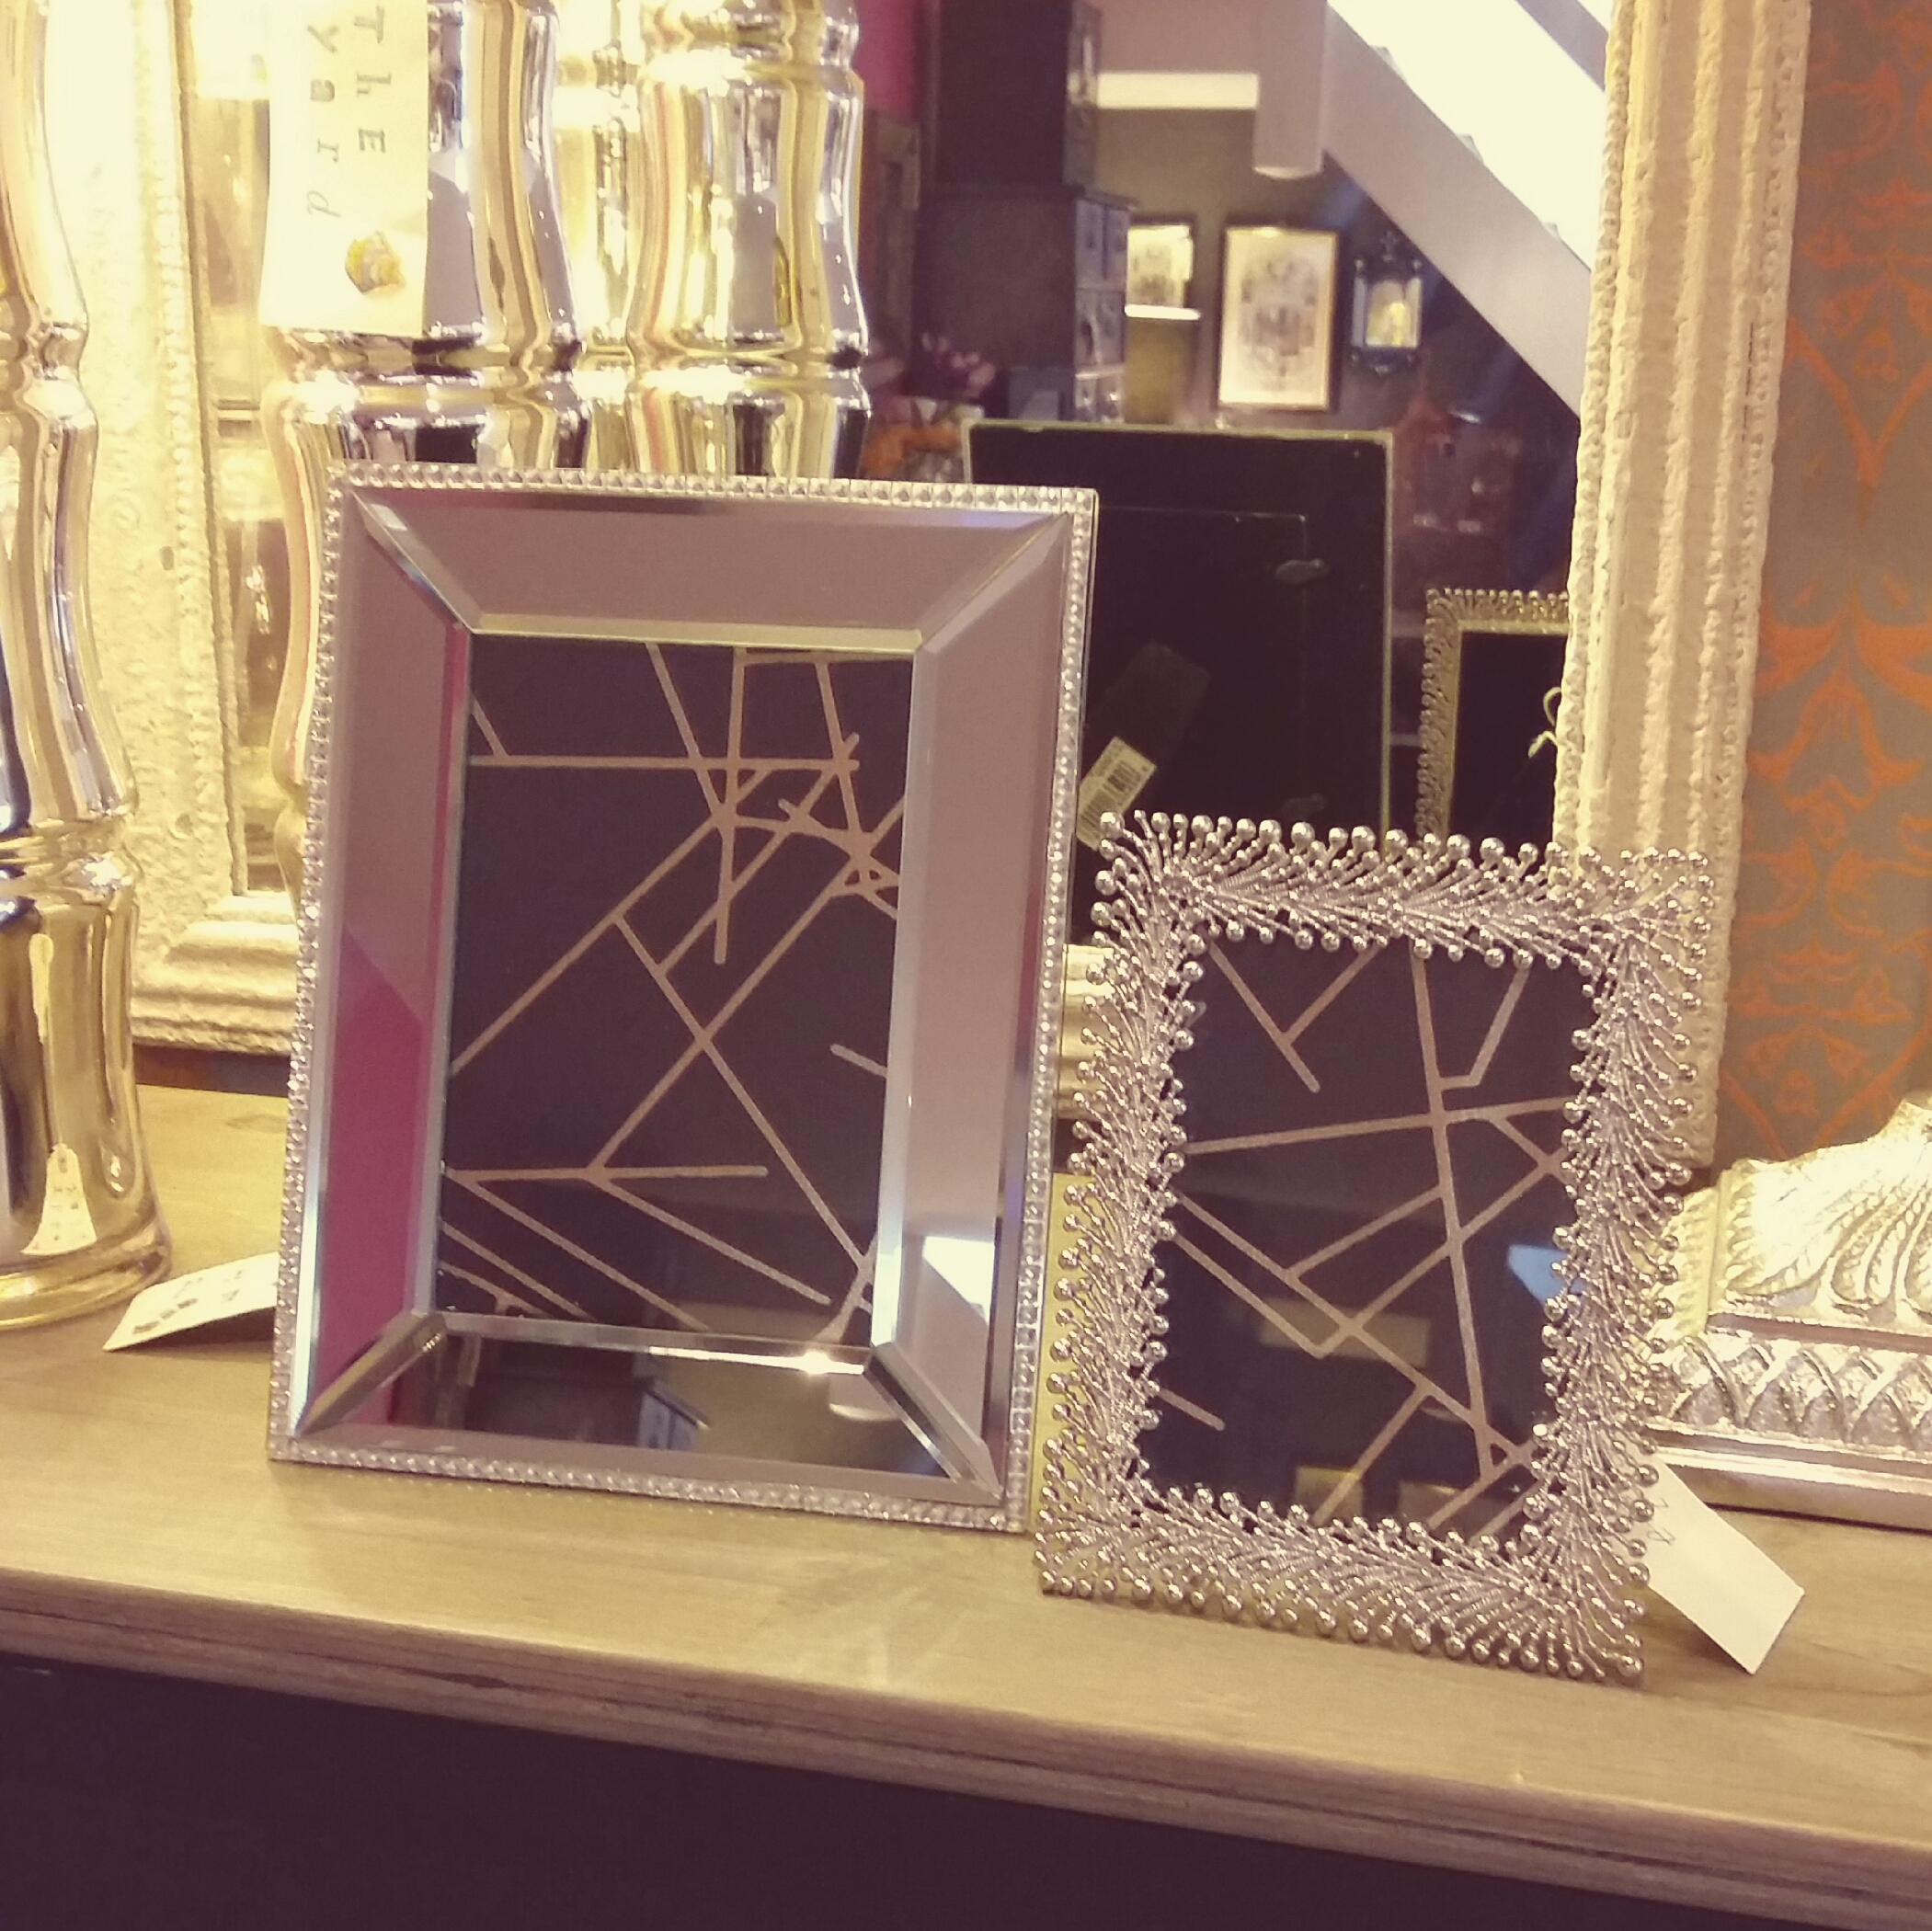 Sliver ornate and mirrored picture frames